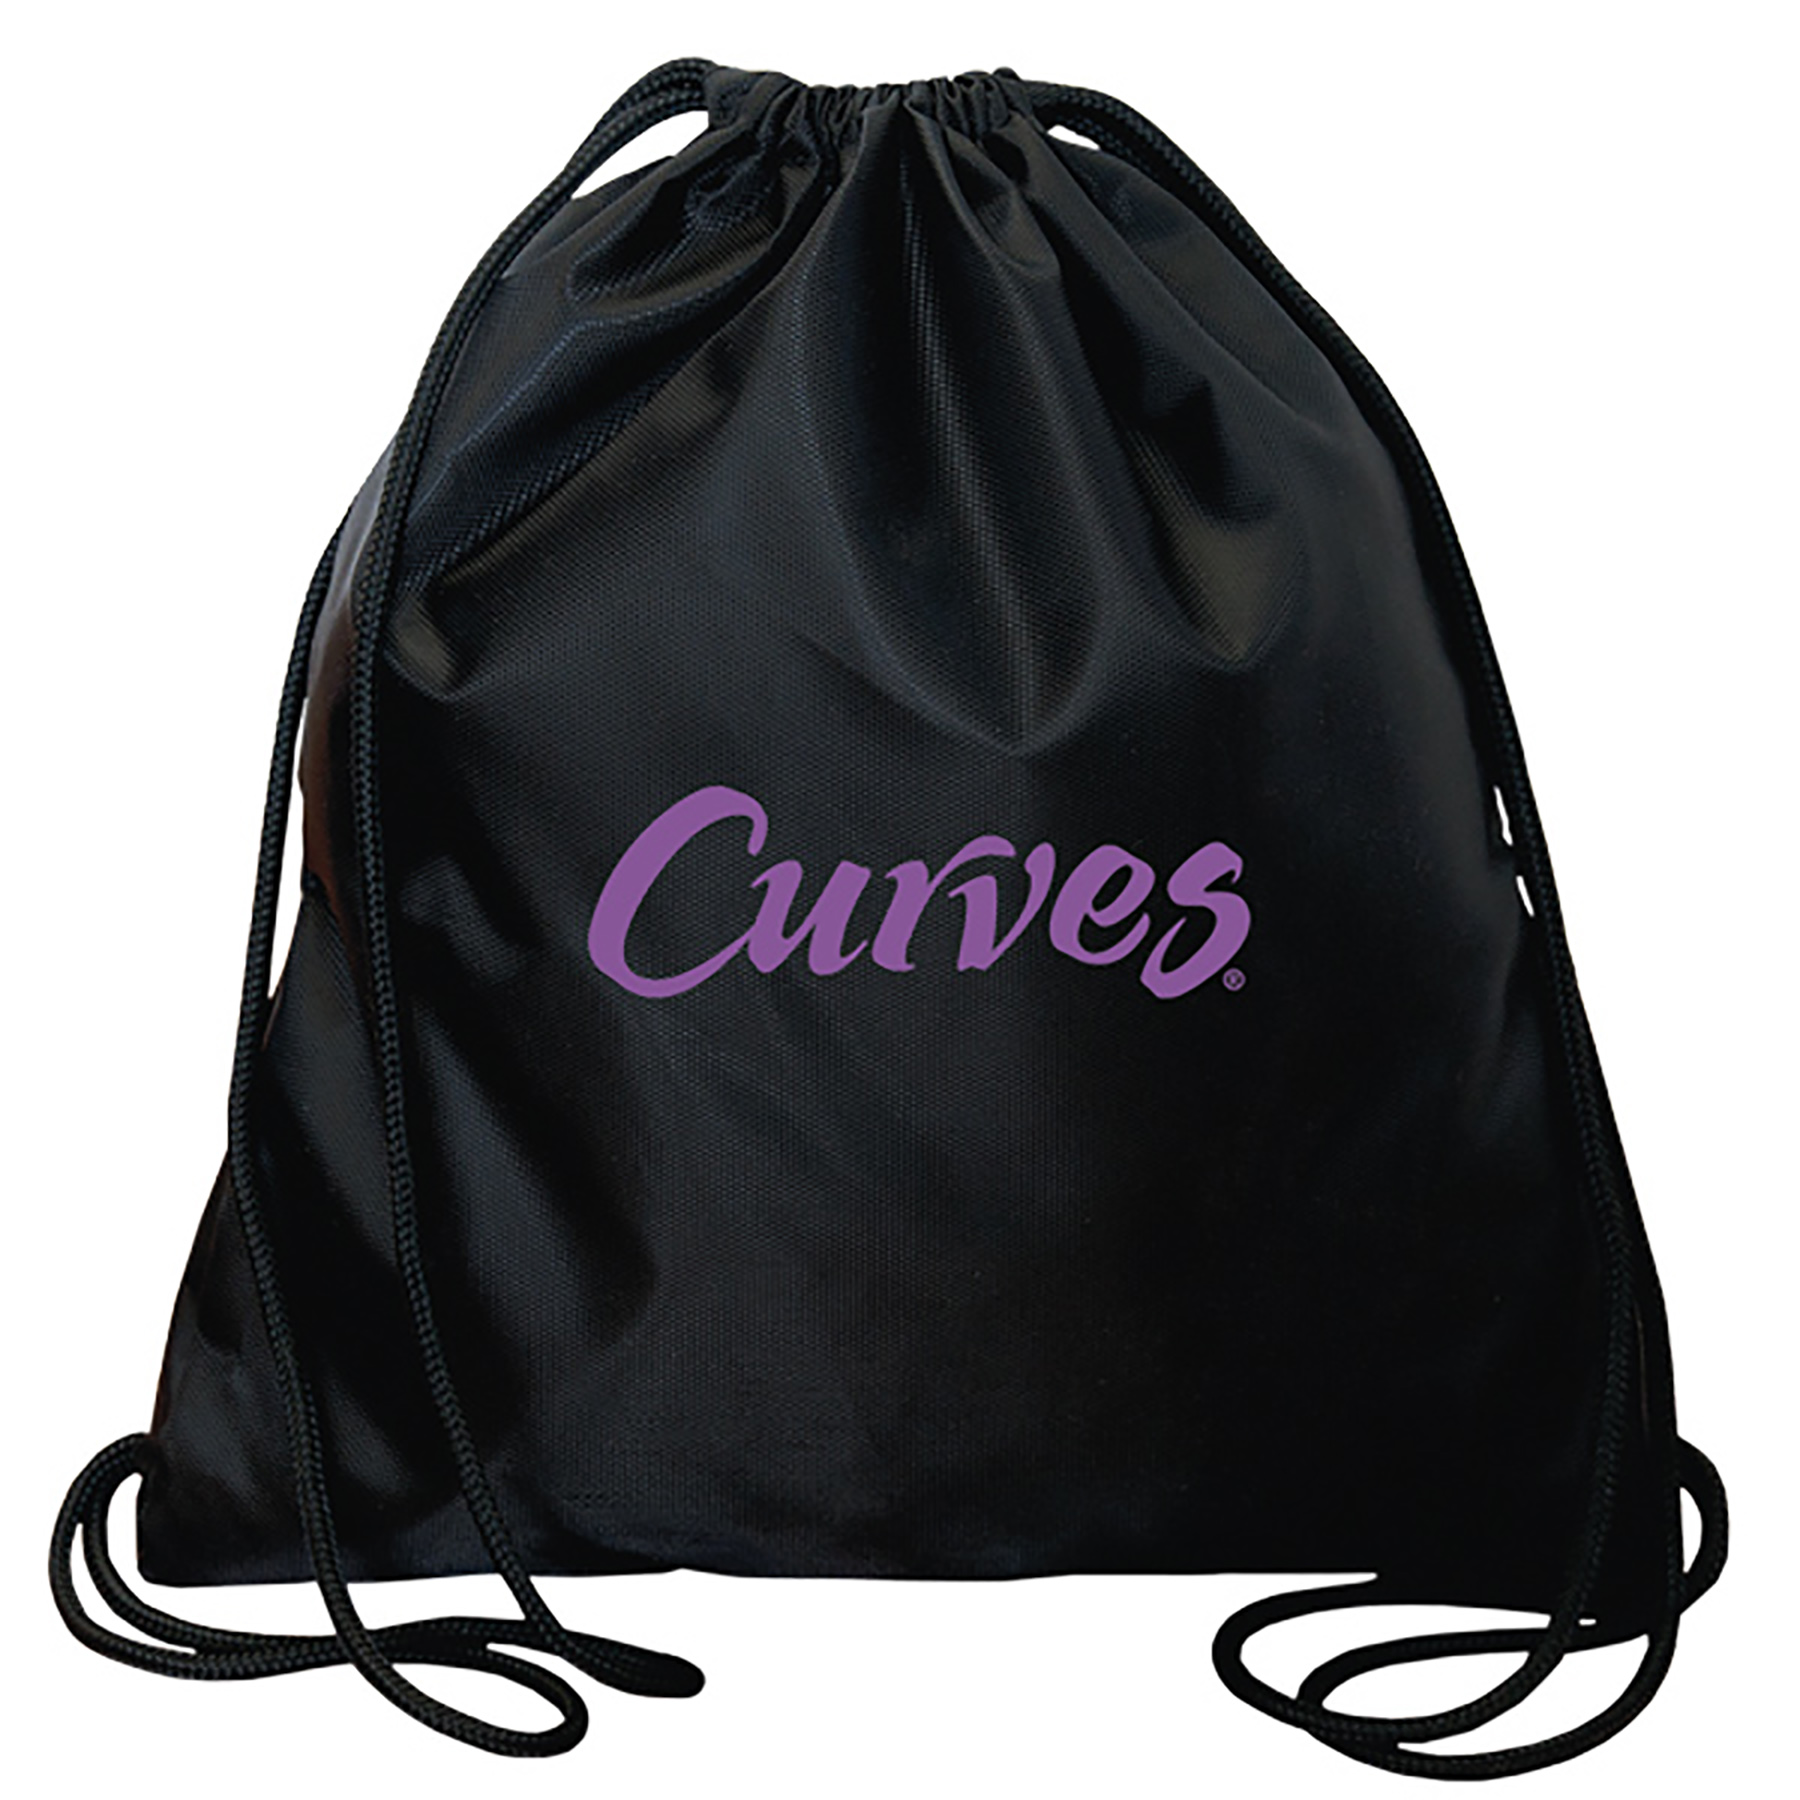 Drawstring Backpack, P5036, 1 Colour Imprint